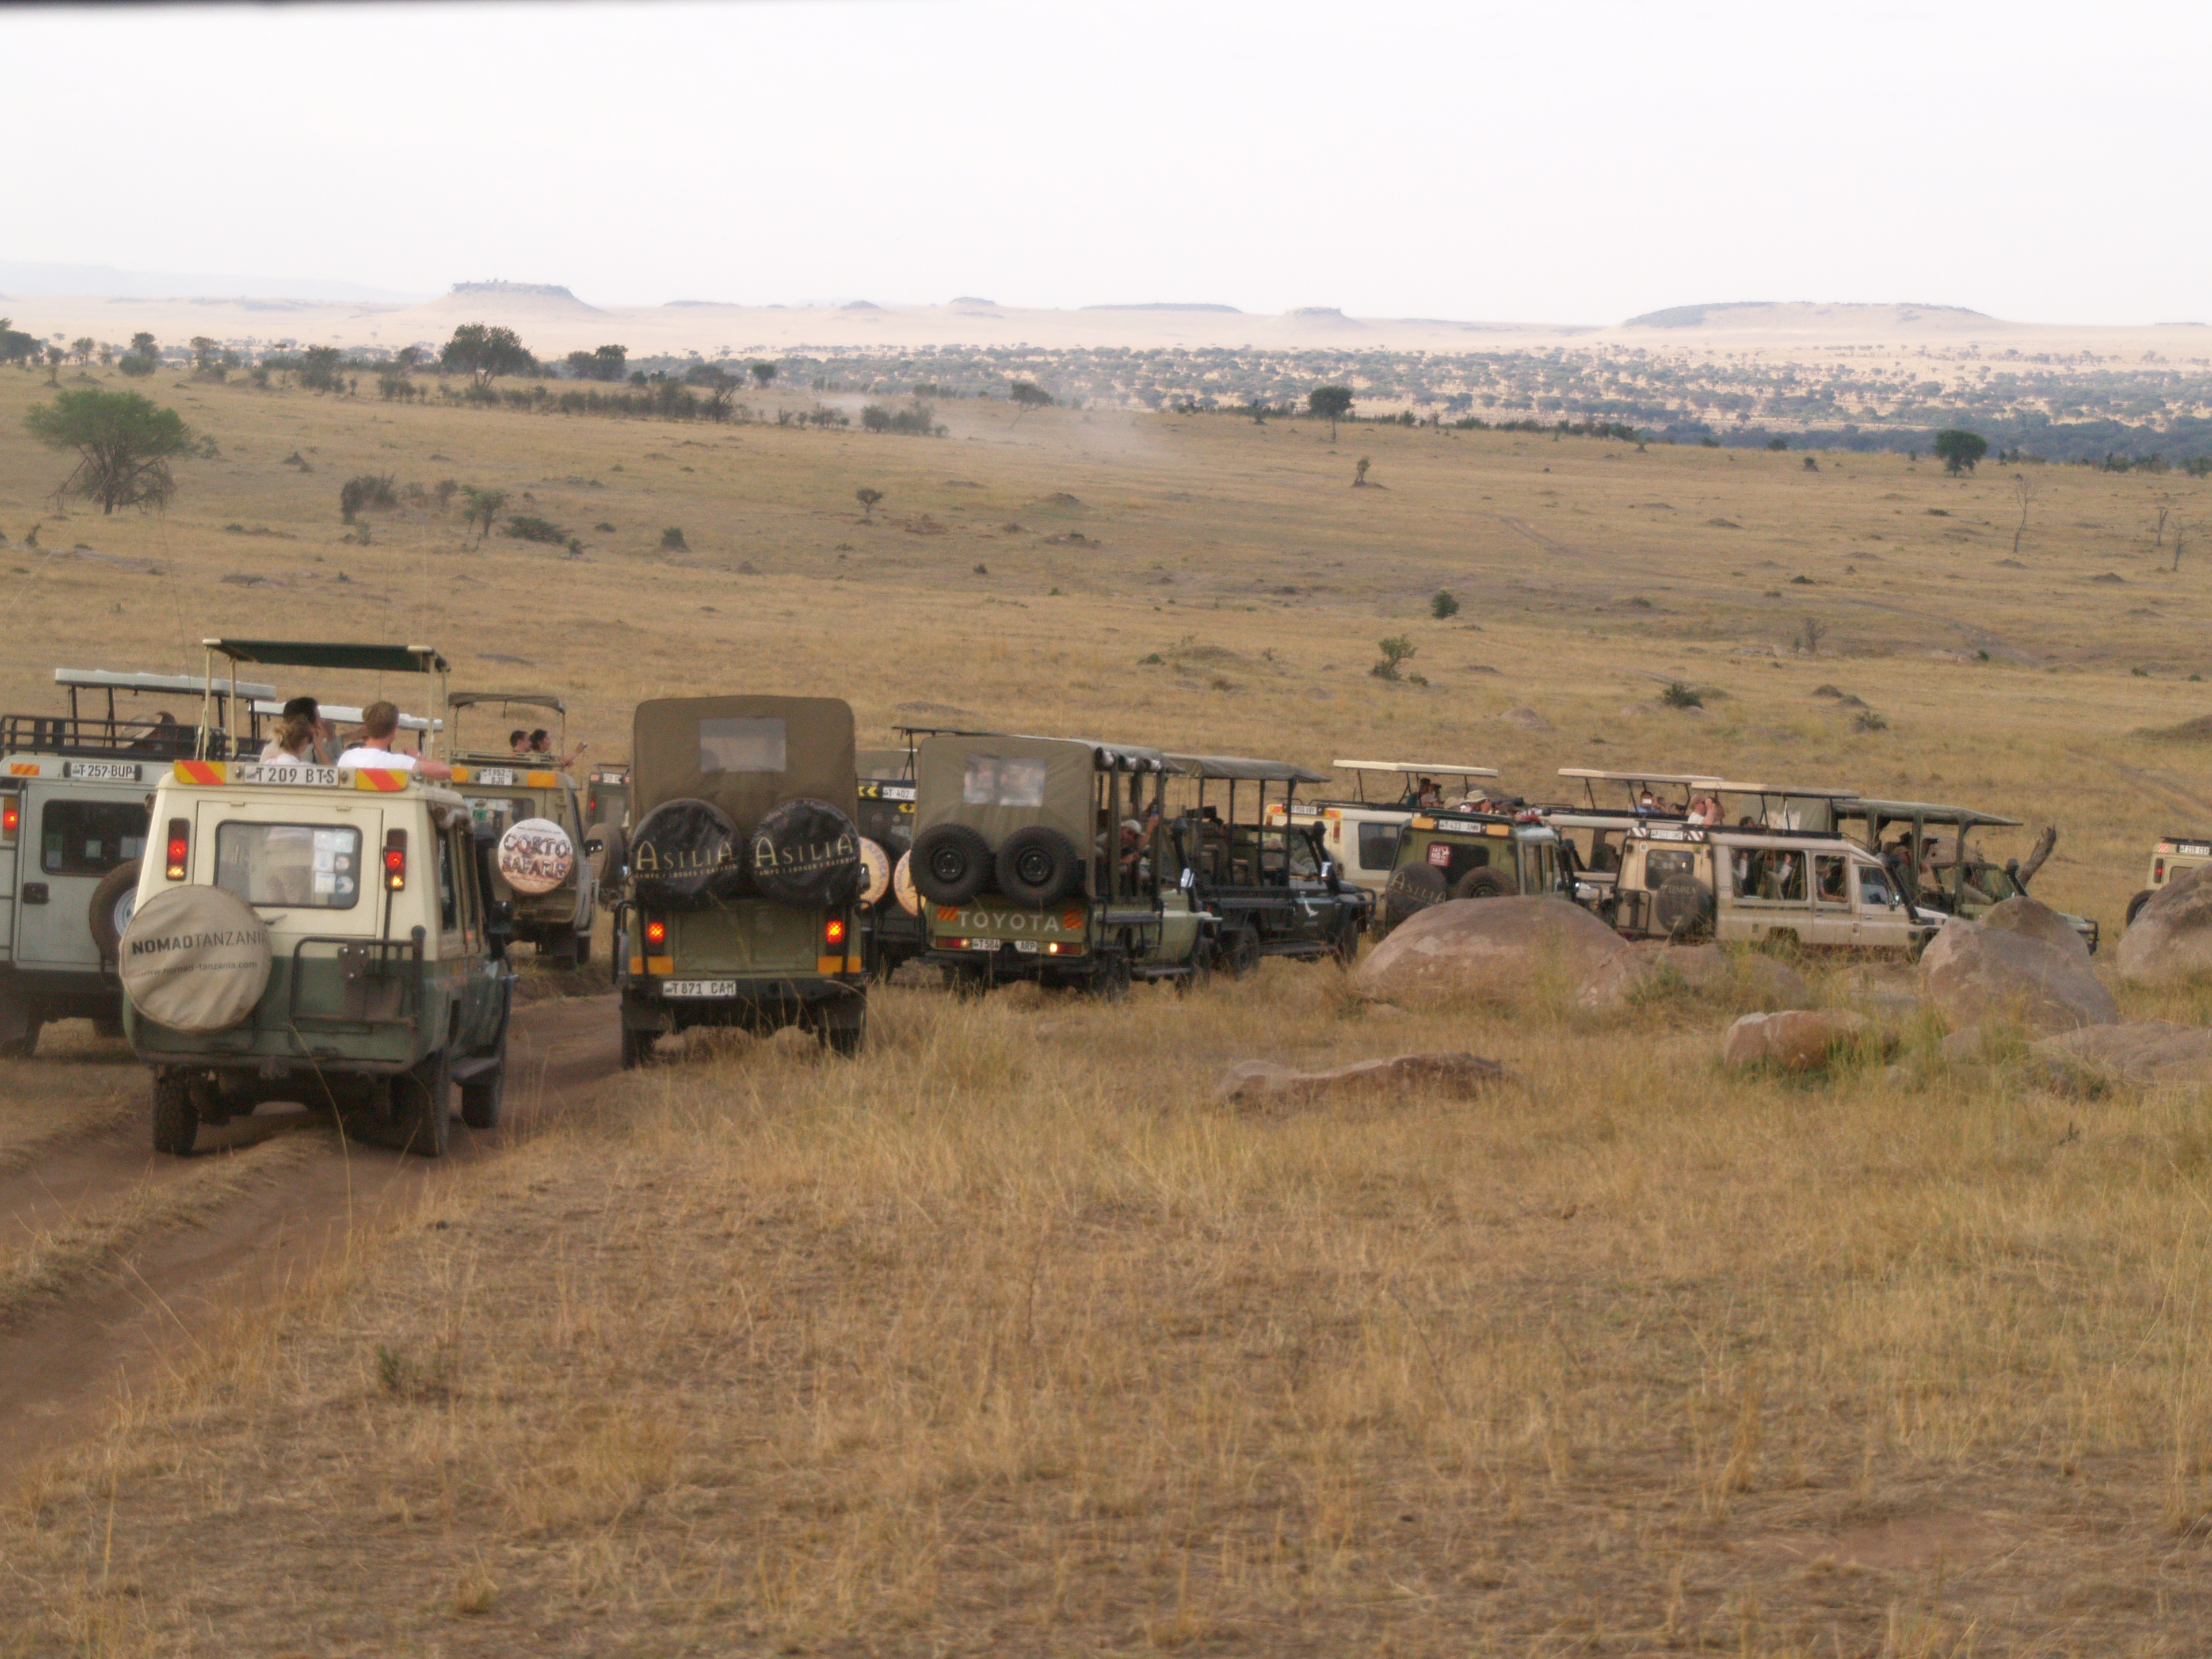 a good example of the amount of vehicles on the south side of the Mara River